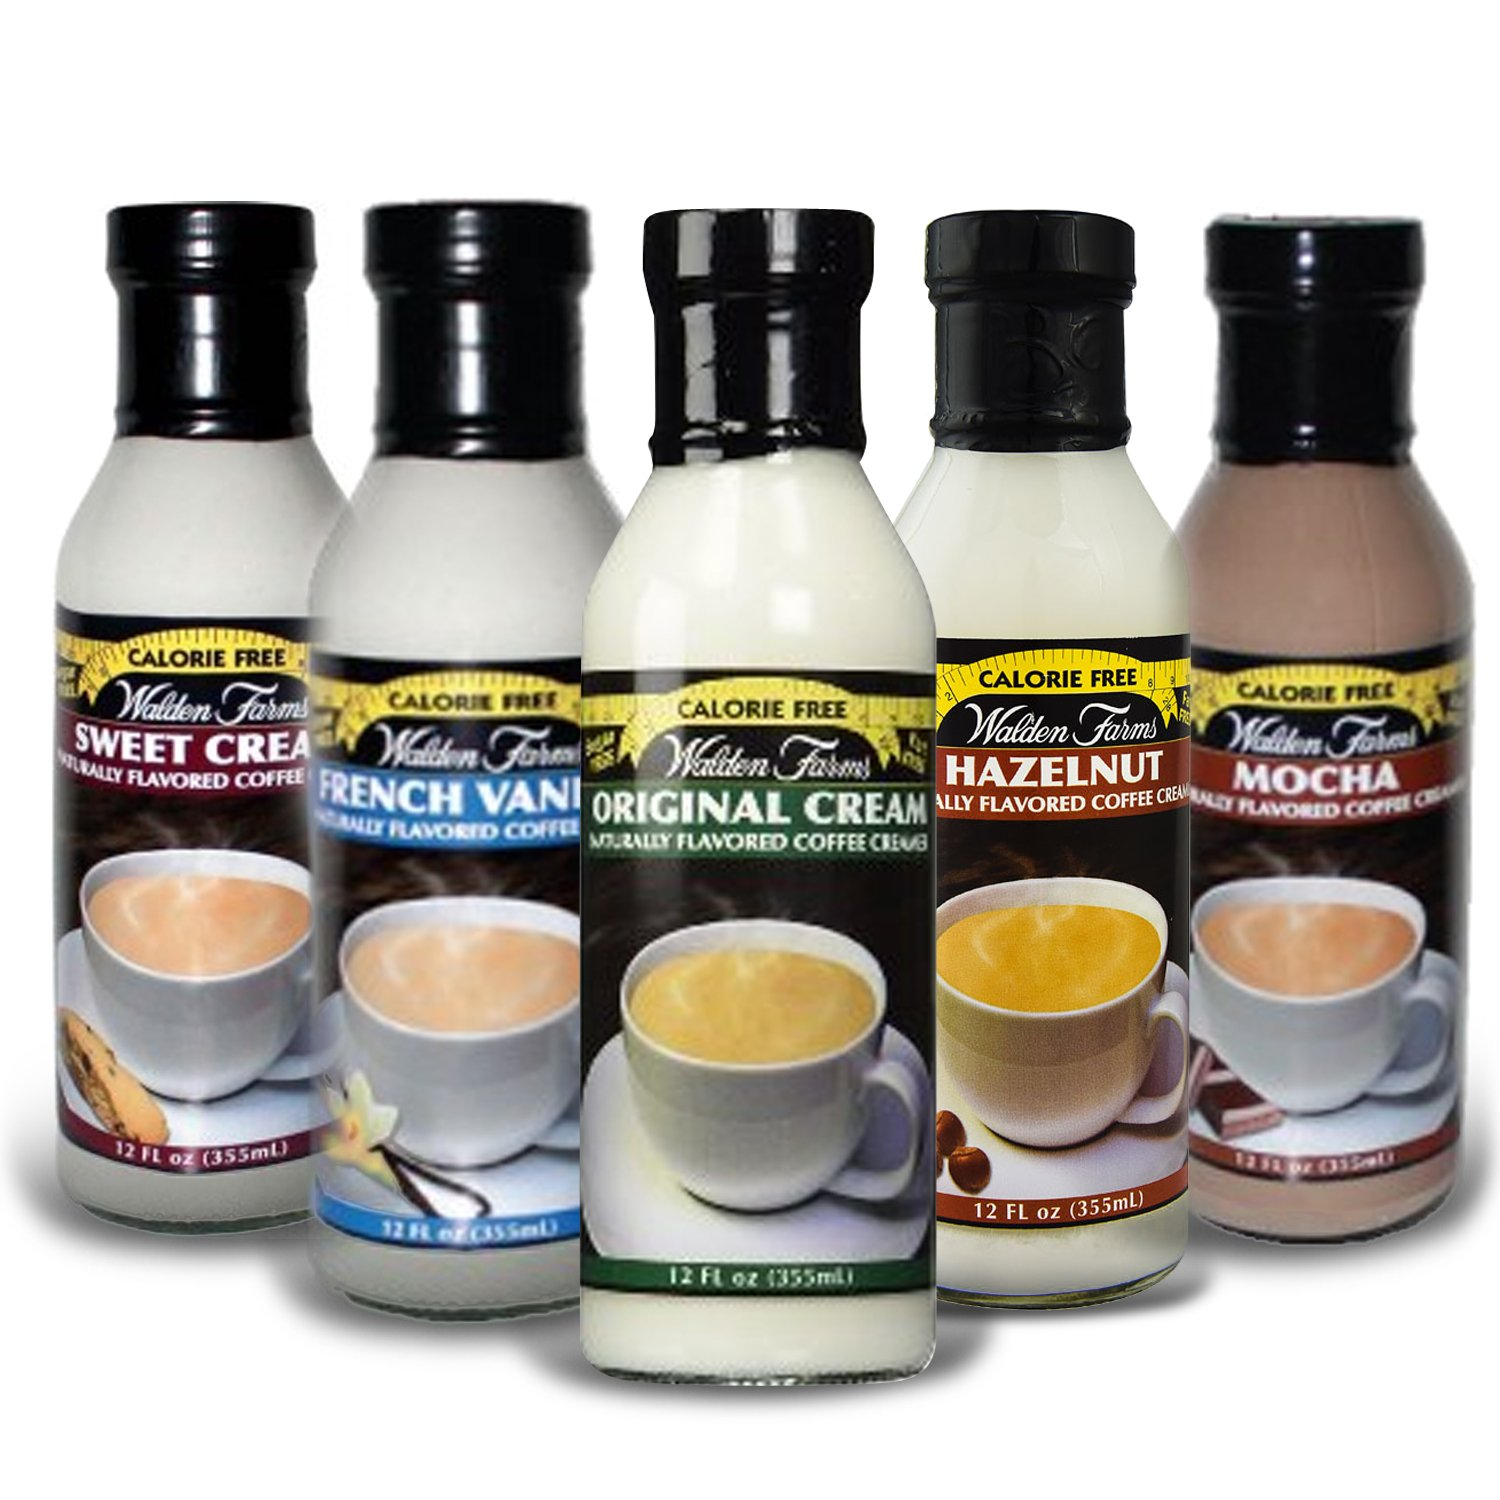 Walden Farms Coffee Creamers Calorie Free, Dairy Free, Carb Free And Vegan Pack of 5 ( Original Cream - Sweet Cream - Mocha- Hazelnut & French Vanilla )